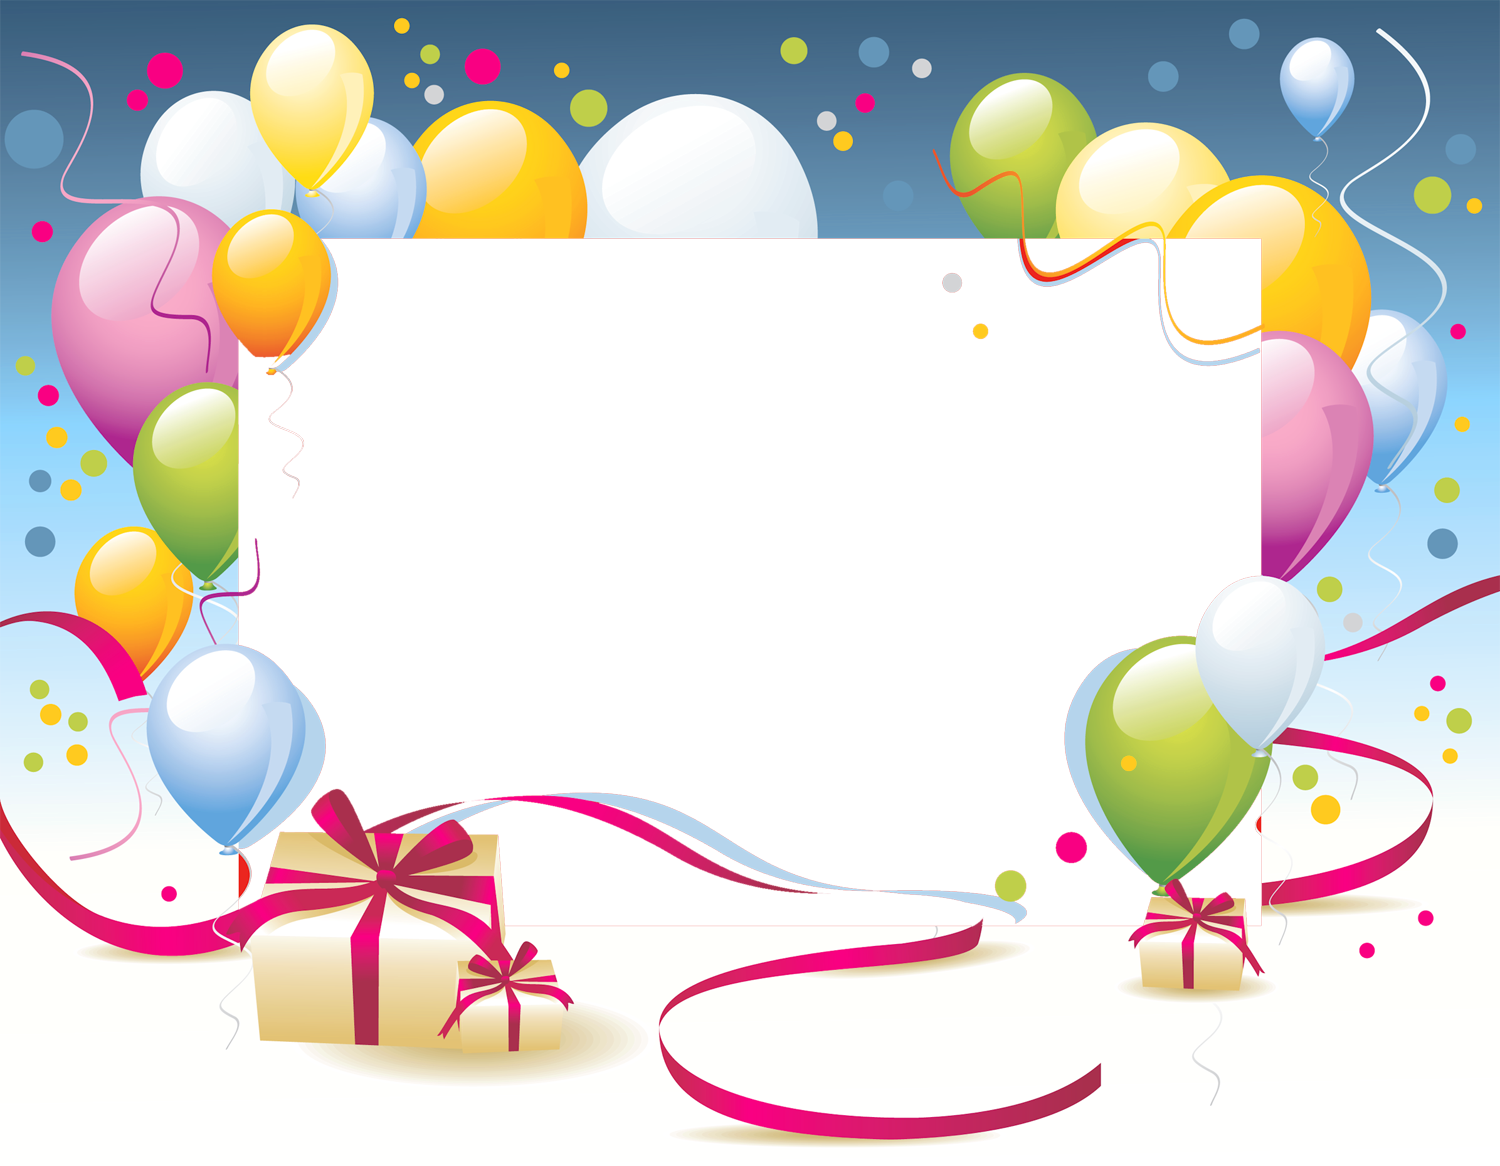 Happy Birthday Banner Template For Cake